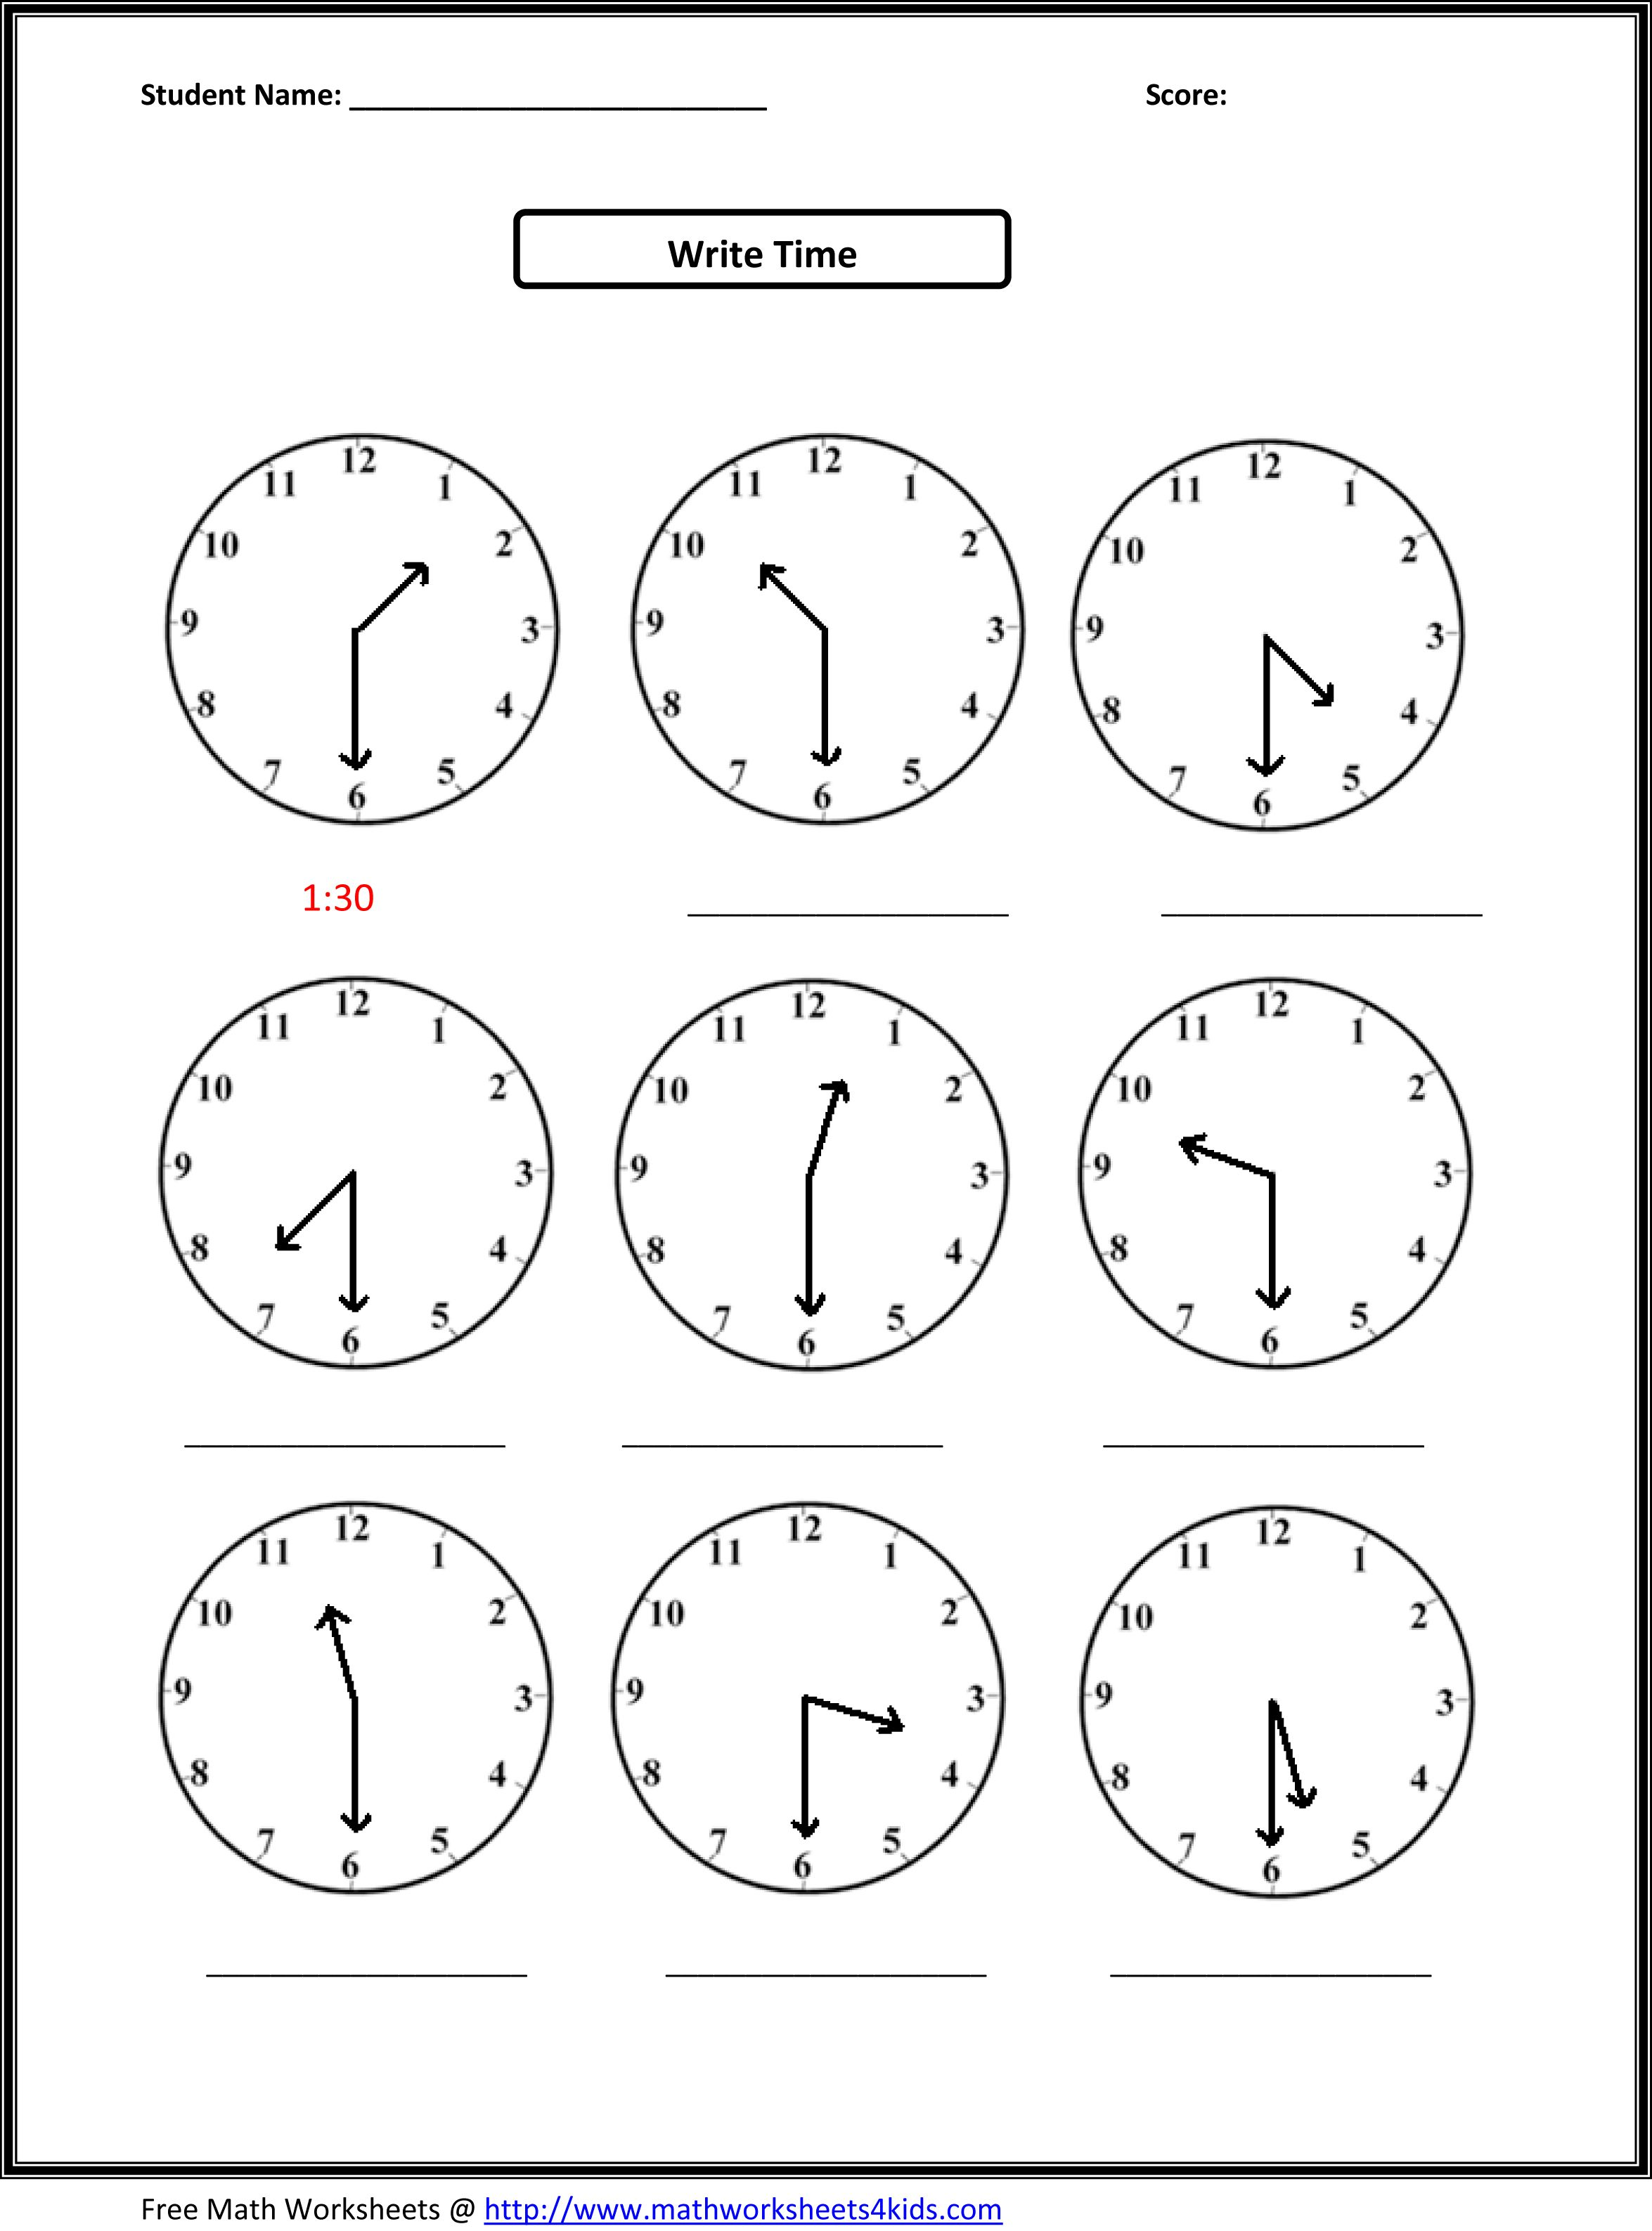 Weirdmailus  Remarkable Worksheet On Time For Grade   Reocurent With Great Free Printable Telling Time Worksheets Nd Grade  Reocurent With Endearing Finding The Circumference Of A Circle Worksheet Also Coin Counting Worksheet In Addition Health Class Worksheets And Edheads Simple Machines Worksheet As Well As Free Beginning Sounds Worksheets Additionally Money Budget Worksheet From Reocurentcom With Weirdmailus  Great Worksheet On Time For Grade   Reocurent With Endearing Free Printable Telling Time Worksheets Nd Grade  Reocurent And Remarkable Finding The Circumference Of A Circle Worksheet Also Coin Counting Worksheet In Addition Health Class Worksheets From Reocurentcom